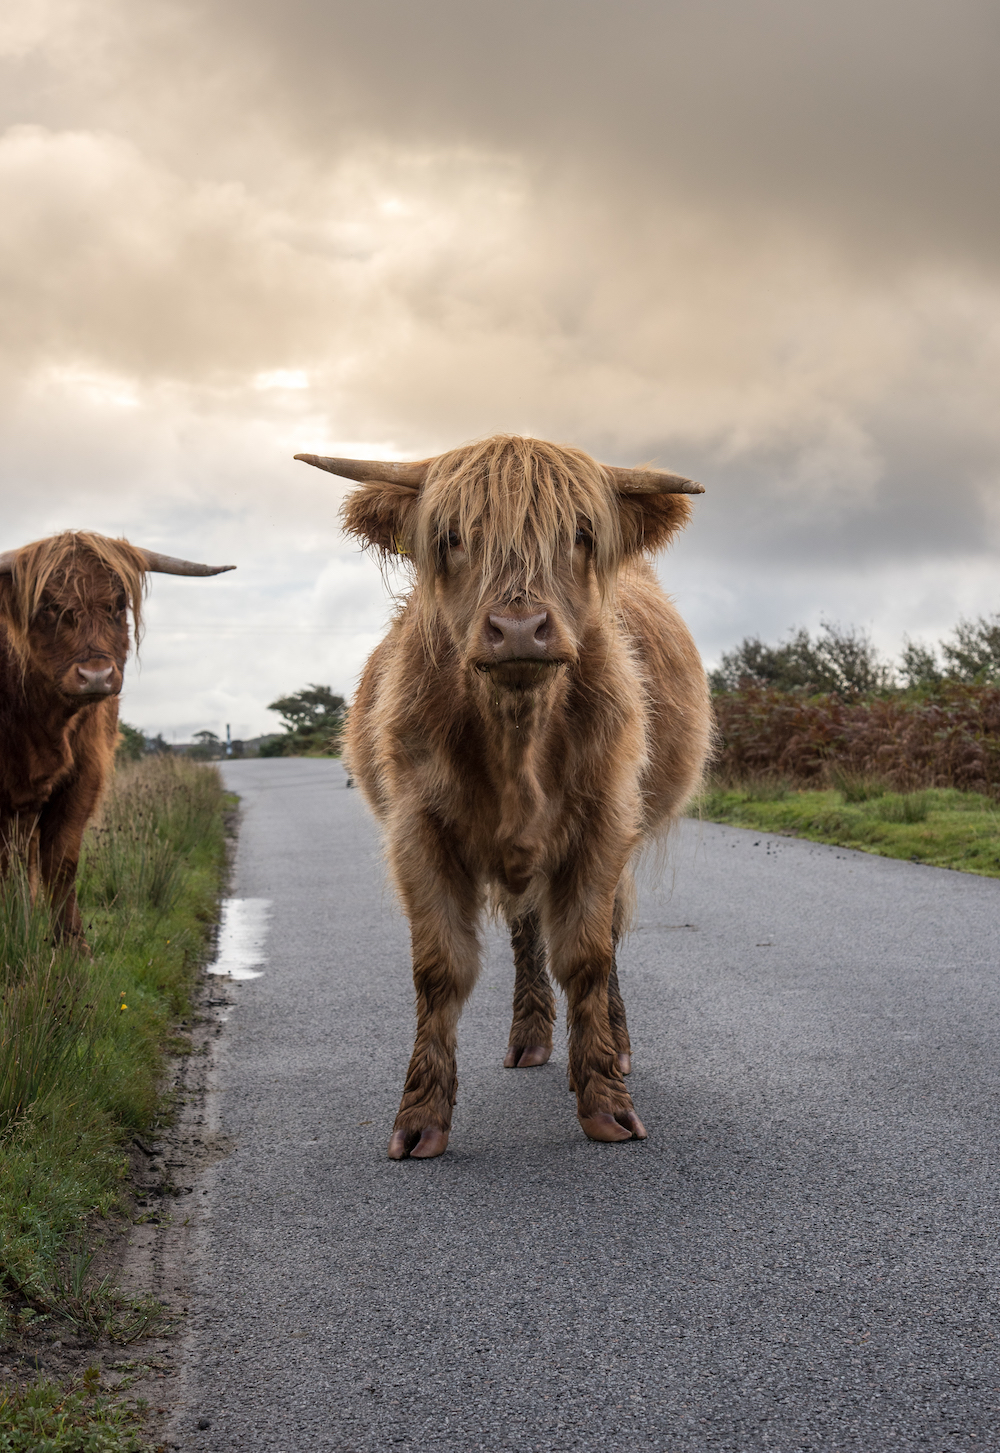 Isle-of-mull-scotland-shaggy-highland-cattle-craignure-finnophort-driving-heberdies-western-highlands-cute-cows-buddha-drinks-fanta-jenny-adams